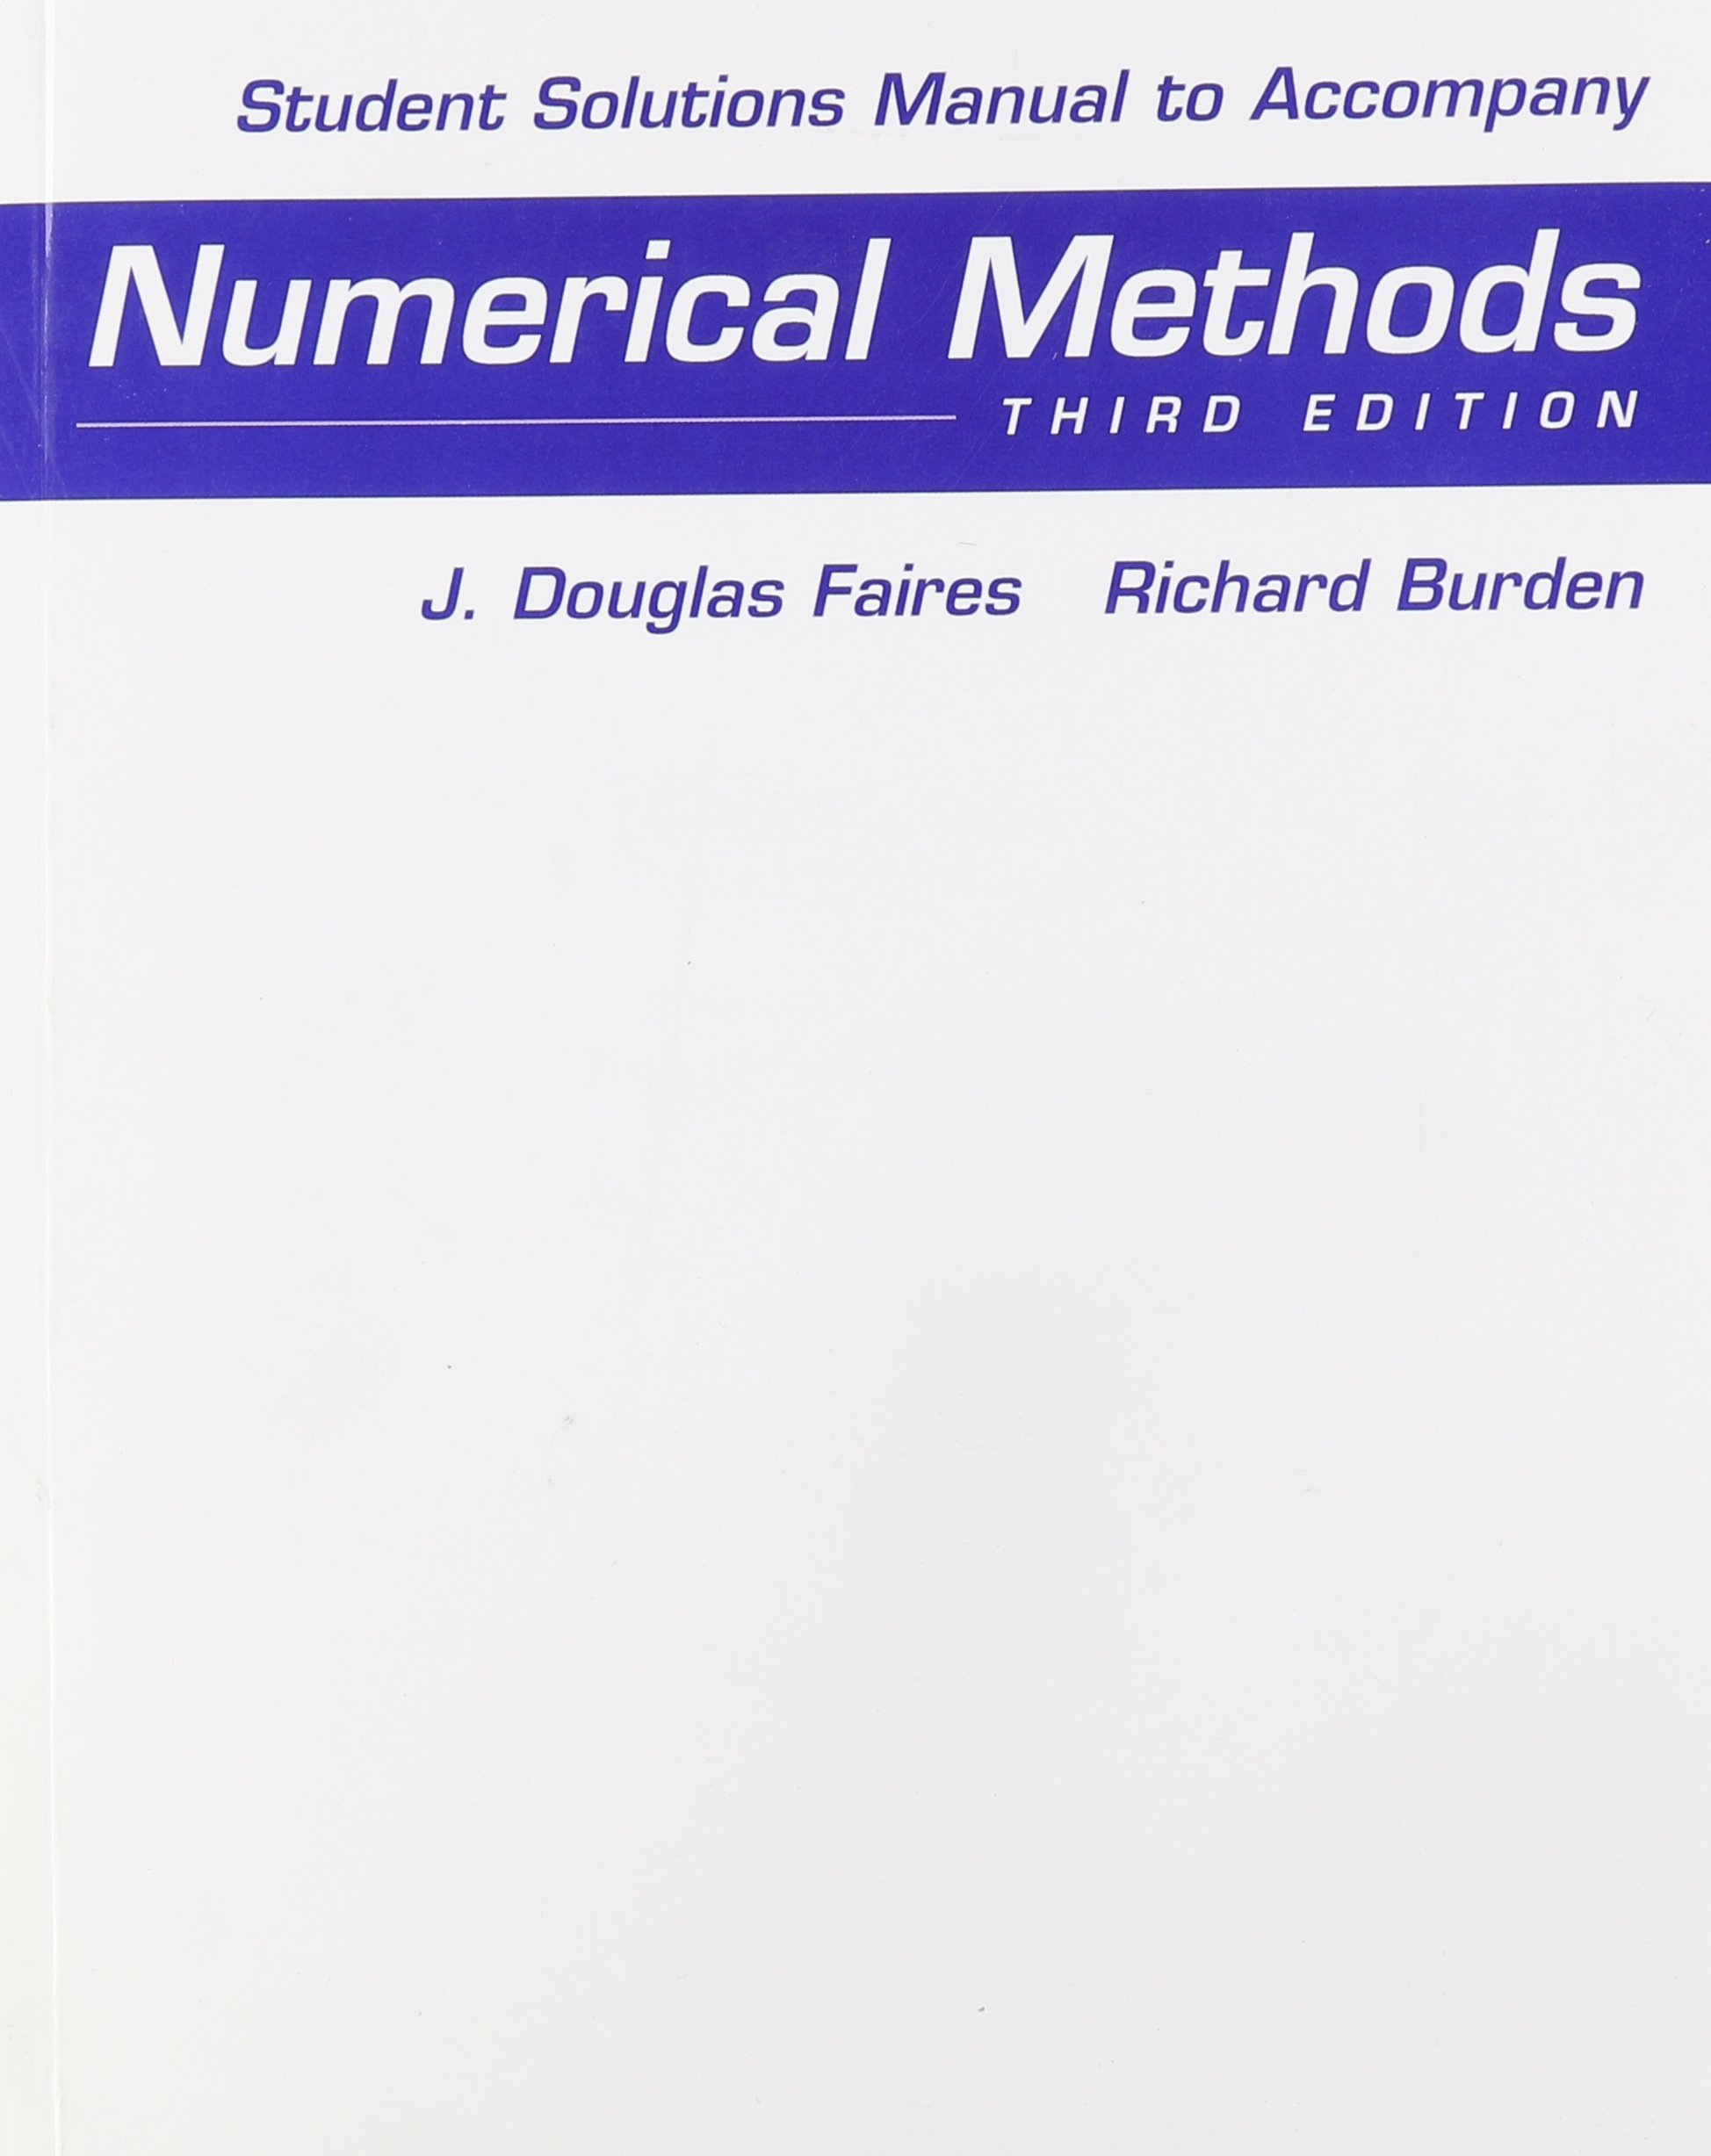 Buy Student Solutions Manual for Faires/Burden's Numerical Methods Book  Online at Low Prices in India | Student Solutions Manual for Faires/Burden's  ...